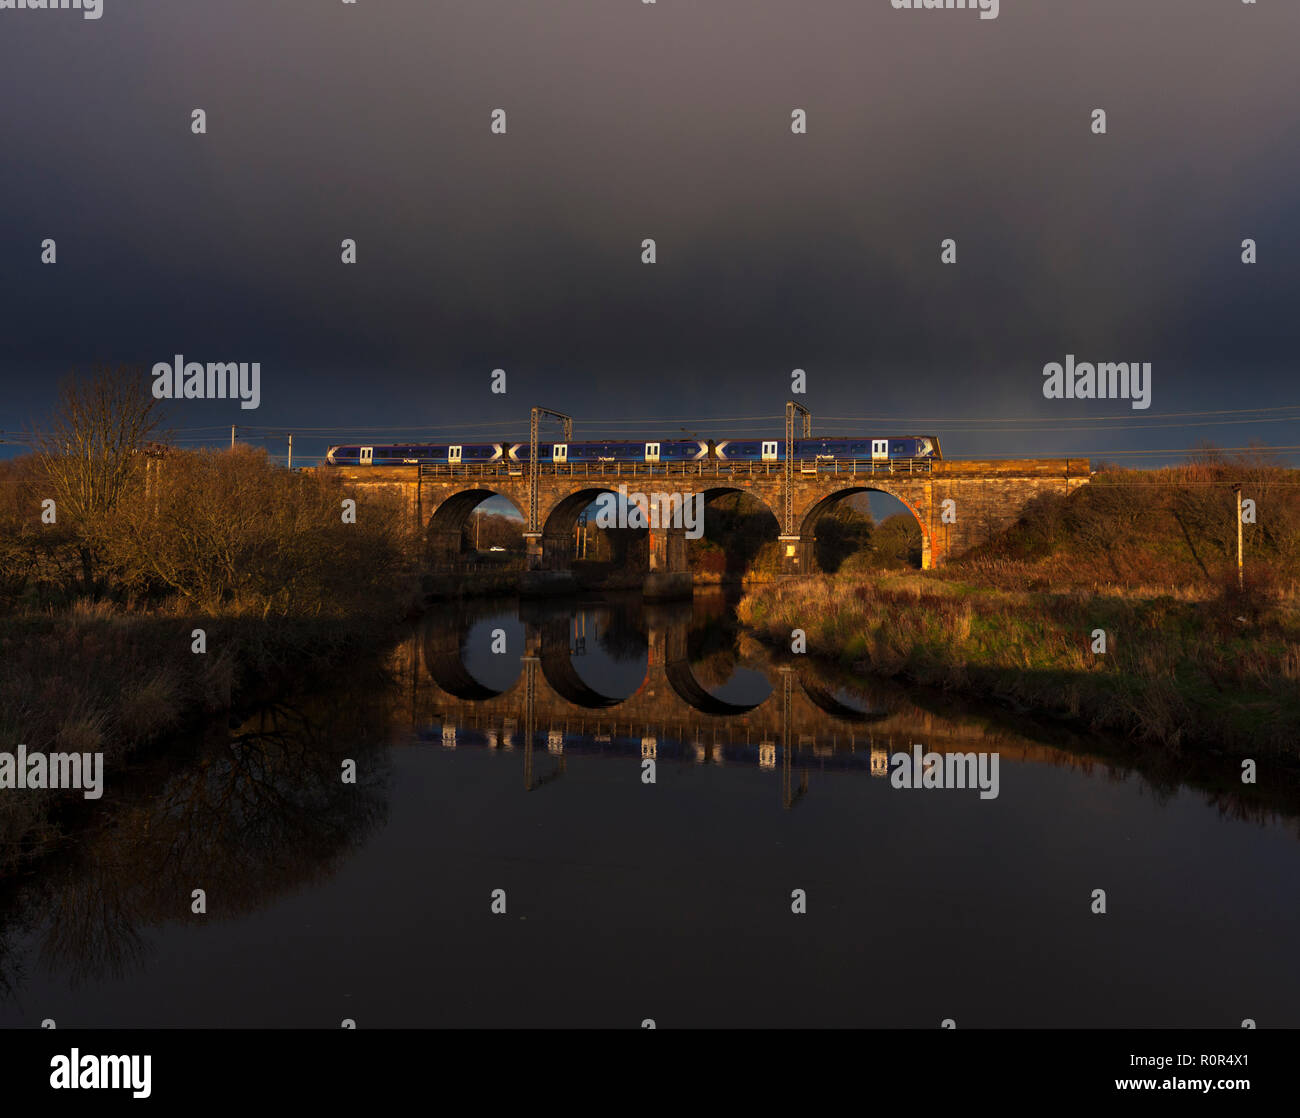 A Scotrail class 380 electric train crossing Garnock Longford viaduct (south of Kilwinning, river Garnock) with black clouds,  sunshine reflecting. - Stock Image